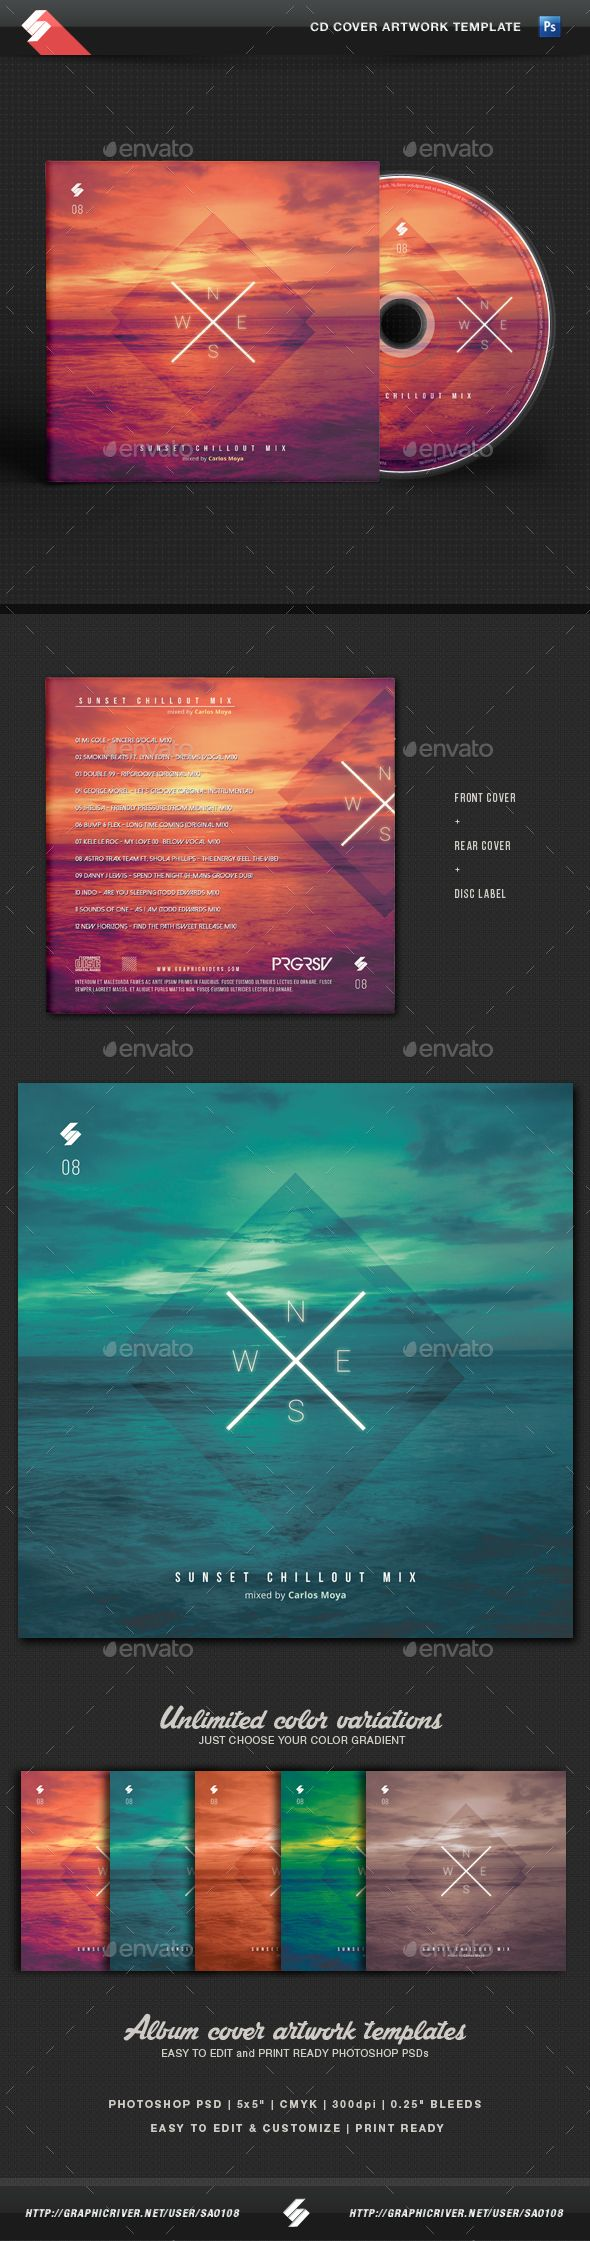 Sunset Chillout - CD Cover Template PSD. Download here: http://graphicriver.net/item/sunset-chillout-cd-cover-template/15683666?ref=ksioks